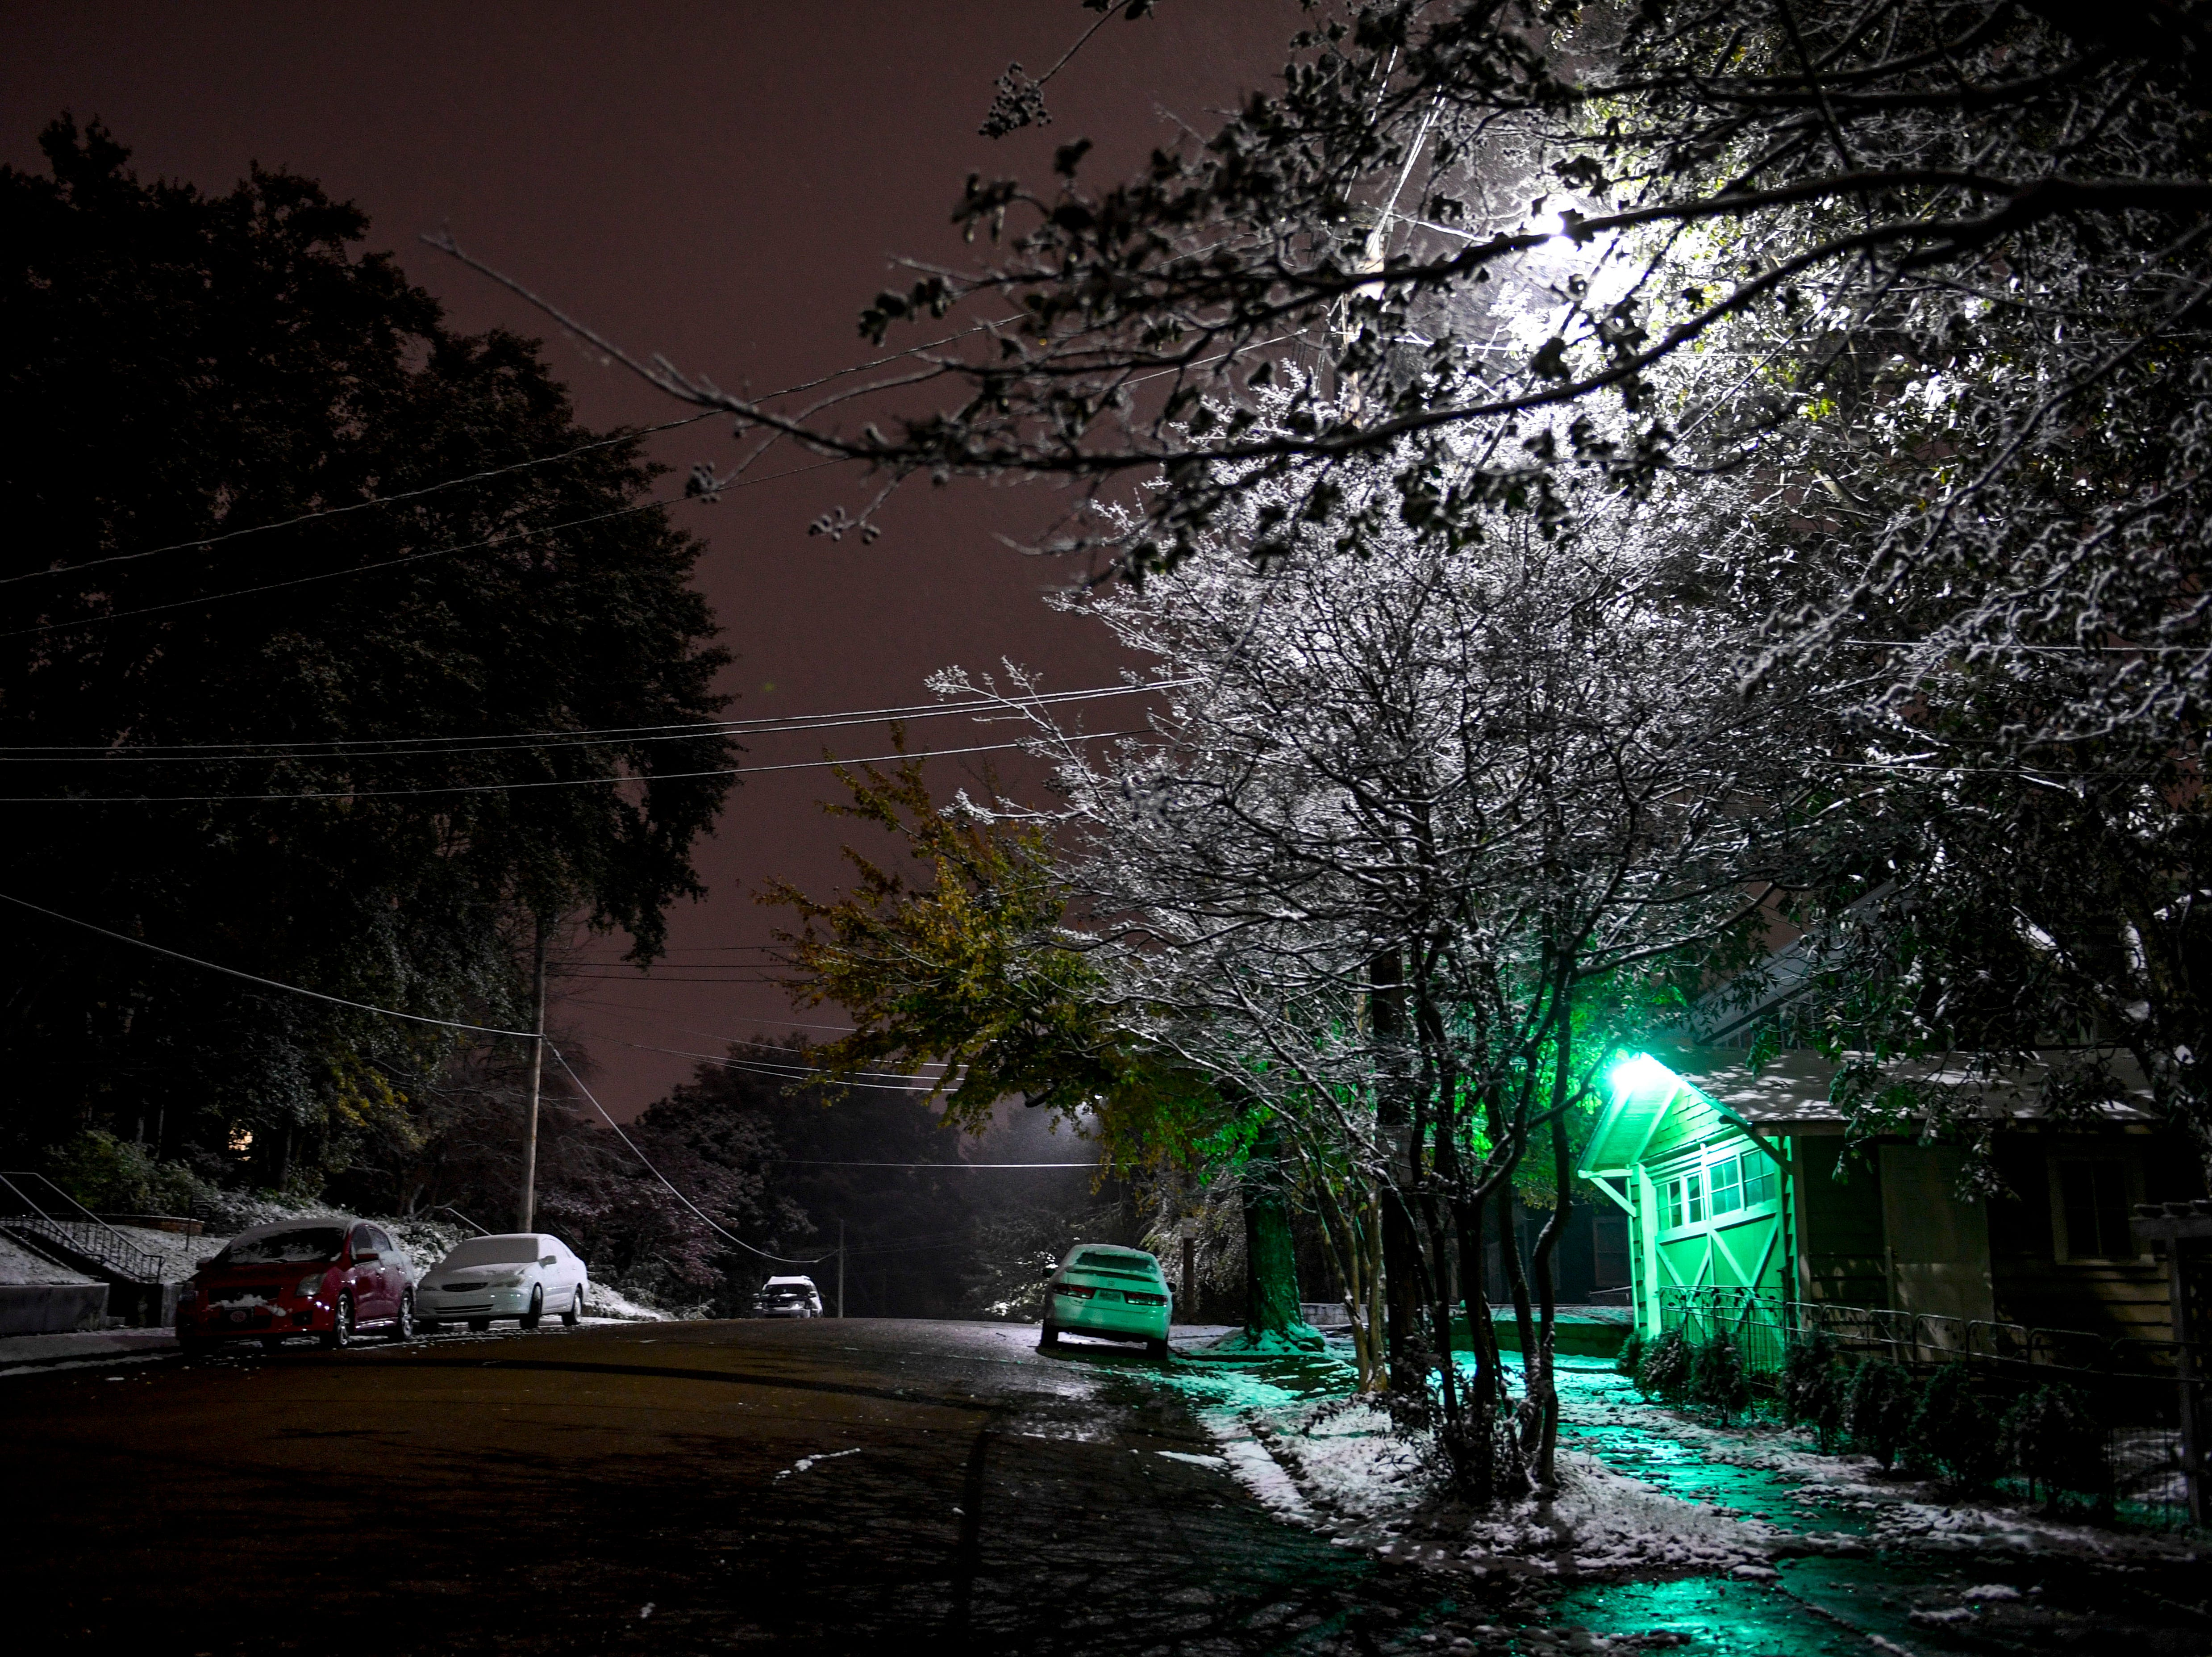 An early snowfall coated scenes of late changing fall leaves, streets, and downtown with powdery snow in Jackson, Tenn., on Wednesday, Nov. 14, 2018.